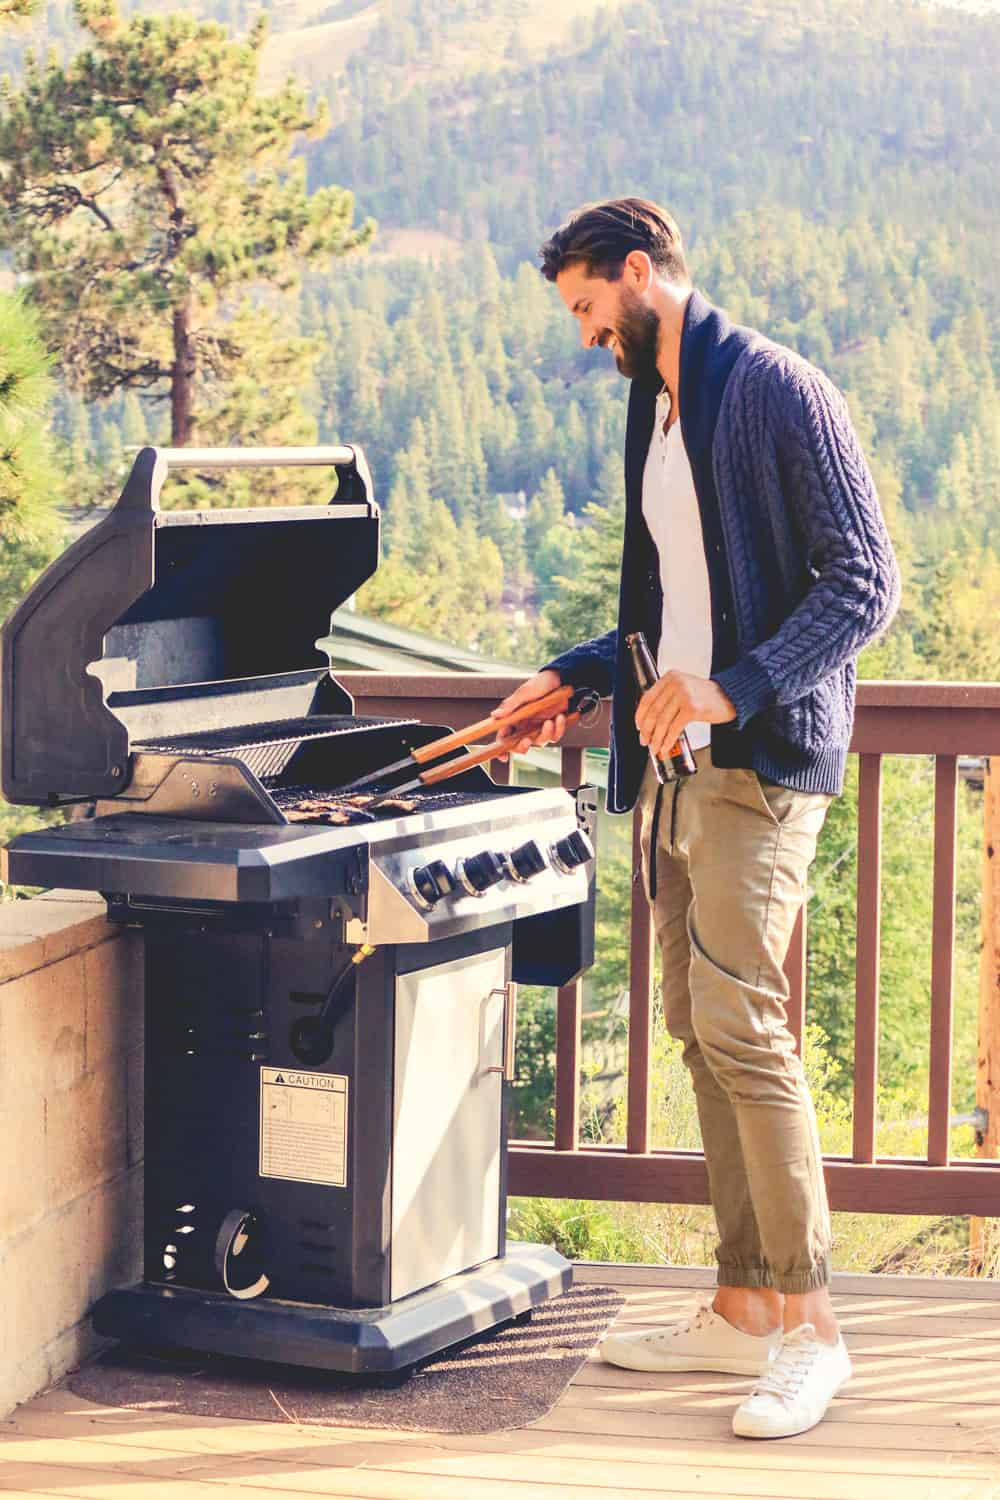 A man standing in front of a grill wearing khaki pants